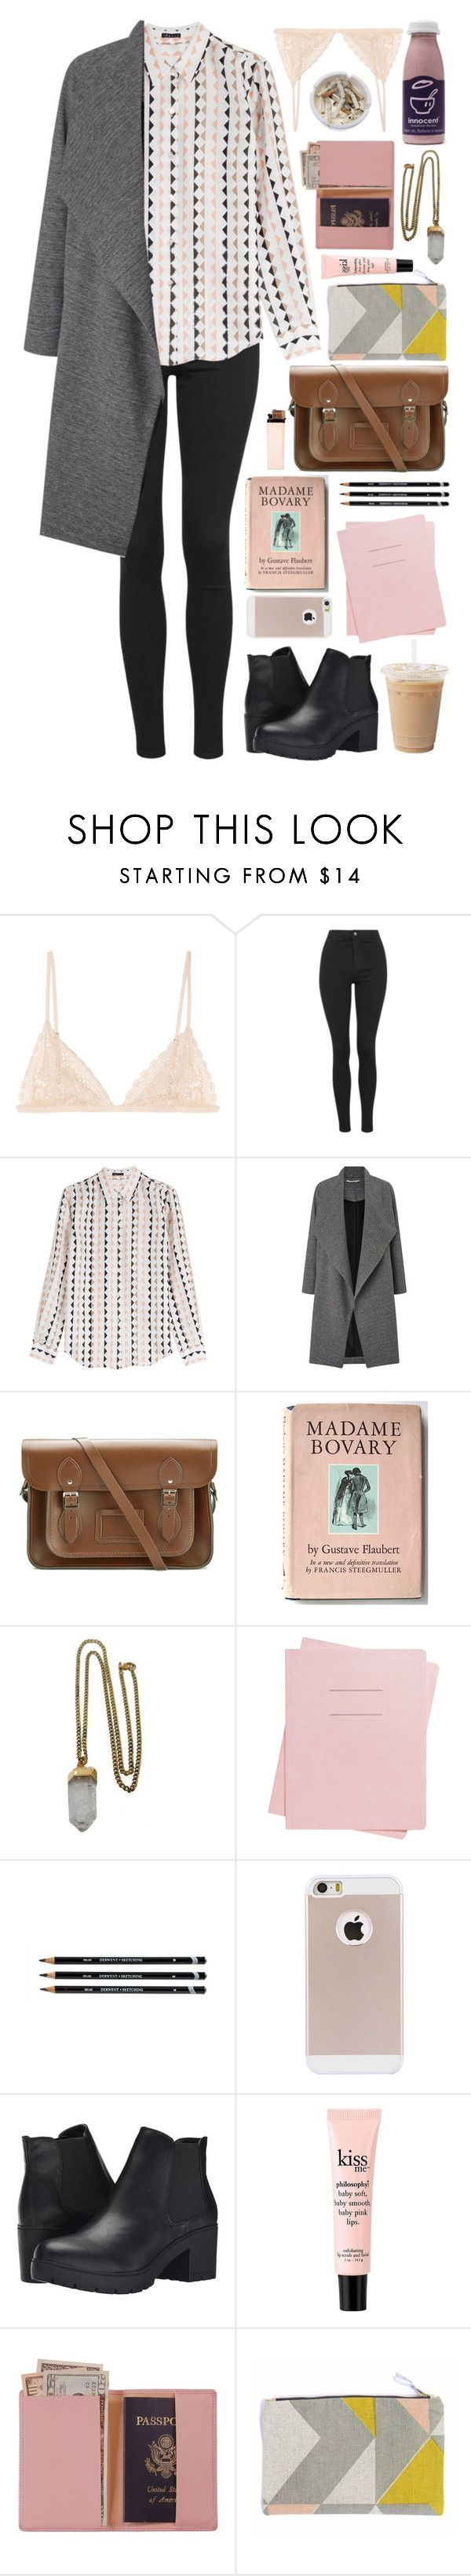 """220316"" by rosemarykate ❤ liked on Polyvore featuring Kiki de Montparnasse, Topshop, Theory, Miss Selfridge, The Cambridge Satchel Company, Lacey Ryan, Shinola, Steve Madden, Ash and philosophy"